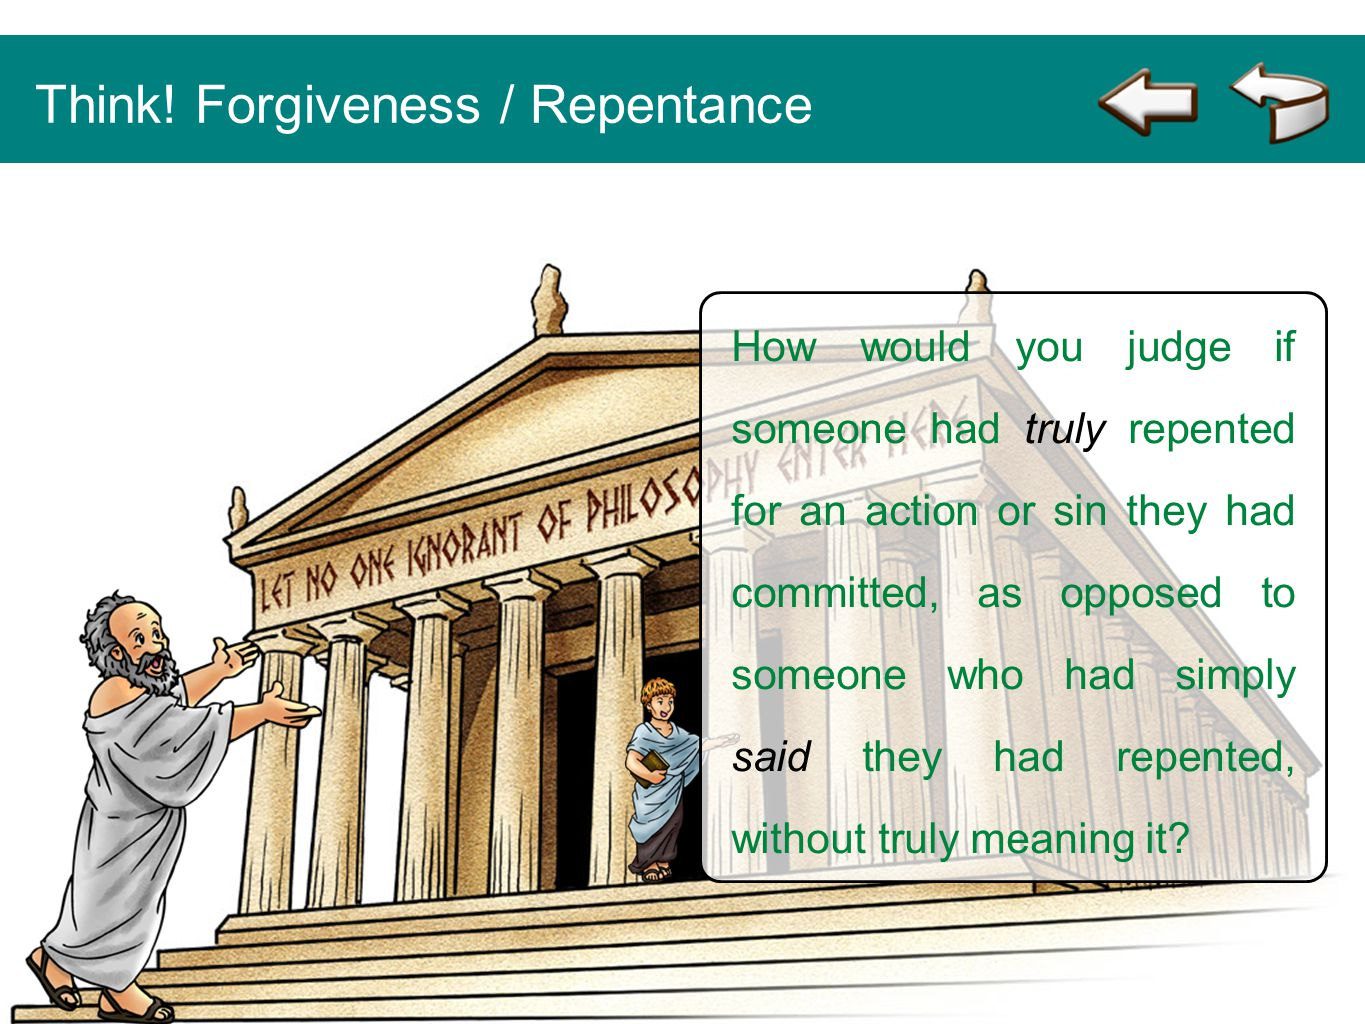 How would you judge if someone had truly repented for an action or sin they had committed, as opposed to someone who had simply said they had repented